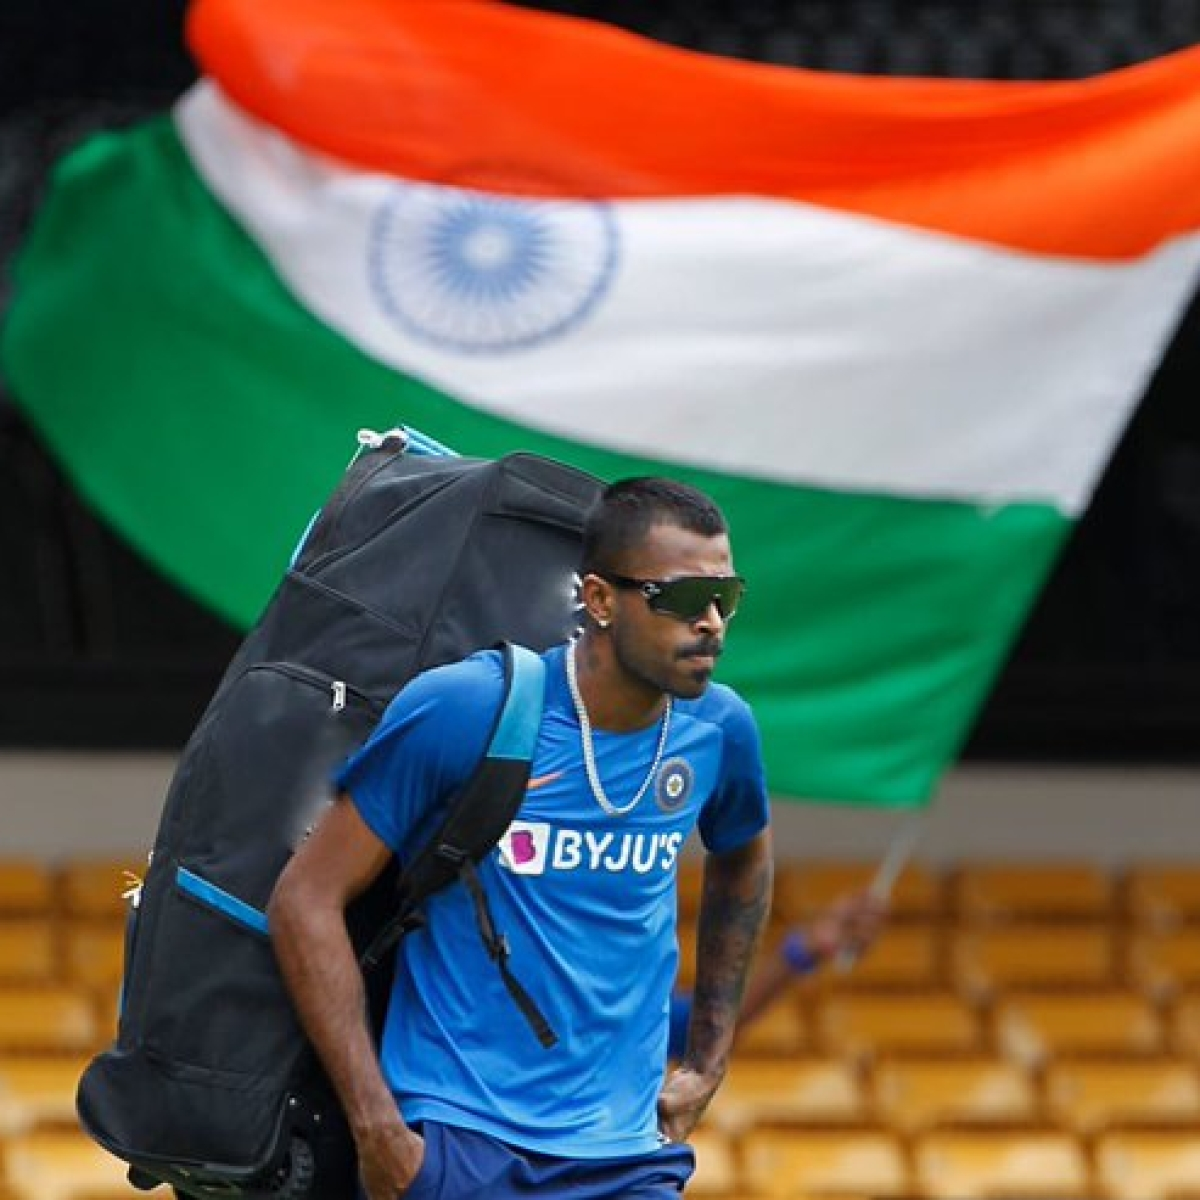 Coffee proved too costly for me, I drink green tea: Hardik Pandya revisits 2019 controversy